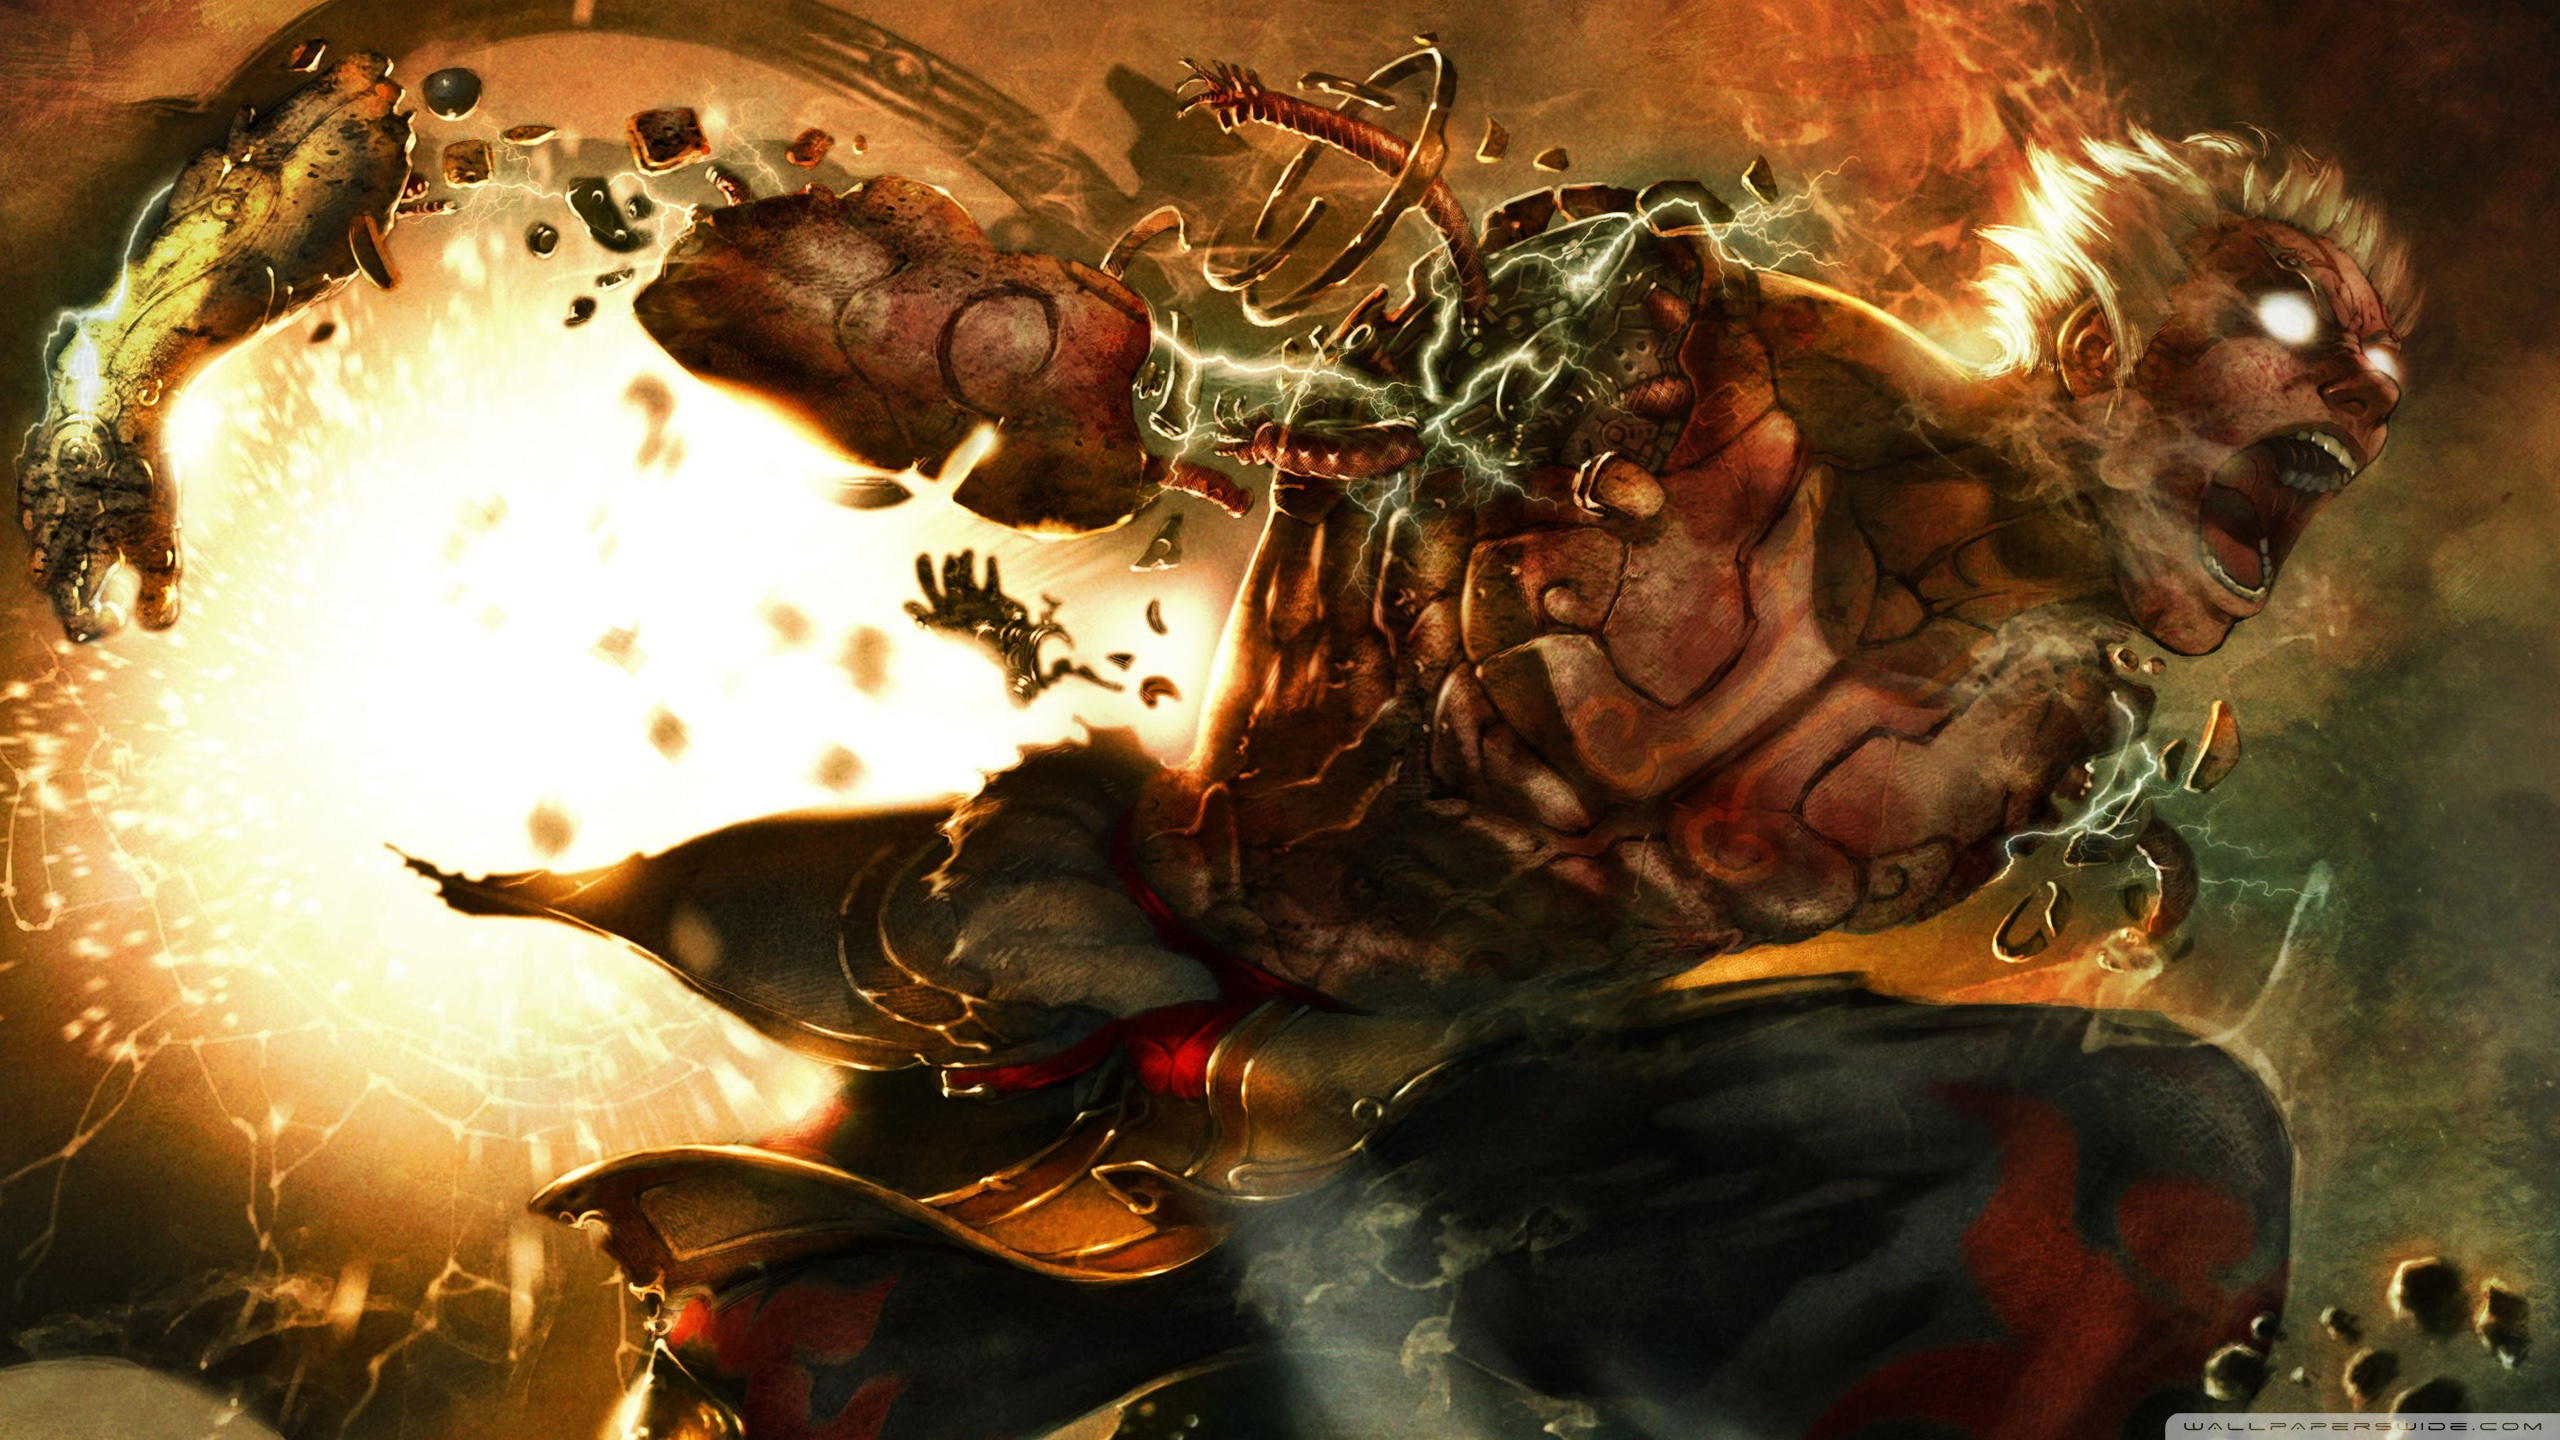 Asuras Wrath HD Wallpapers and Background Images   stmednet 2560x1440